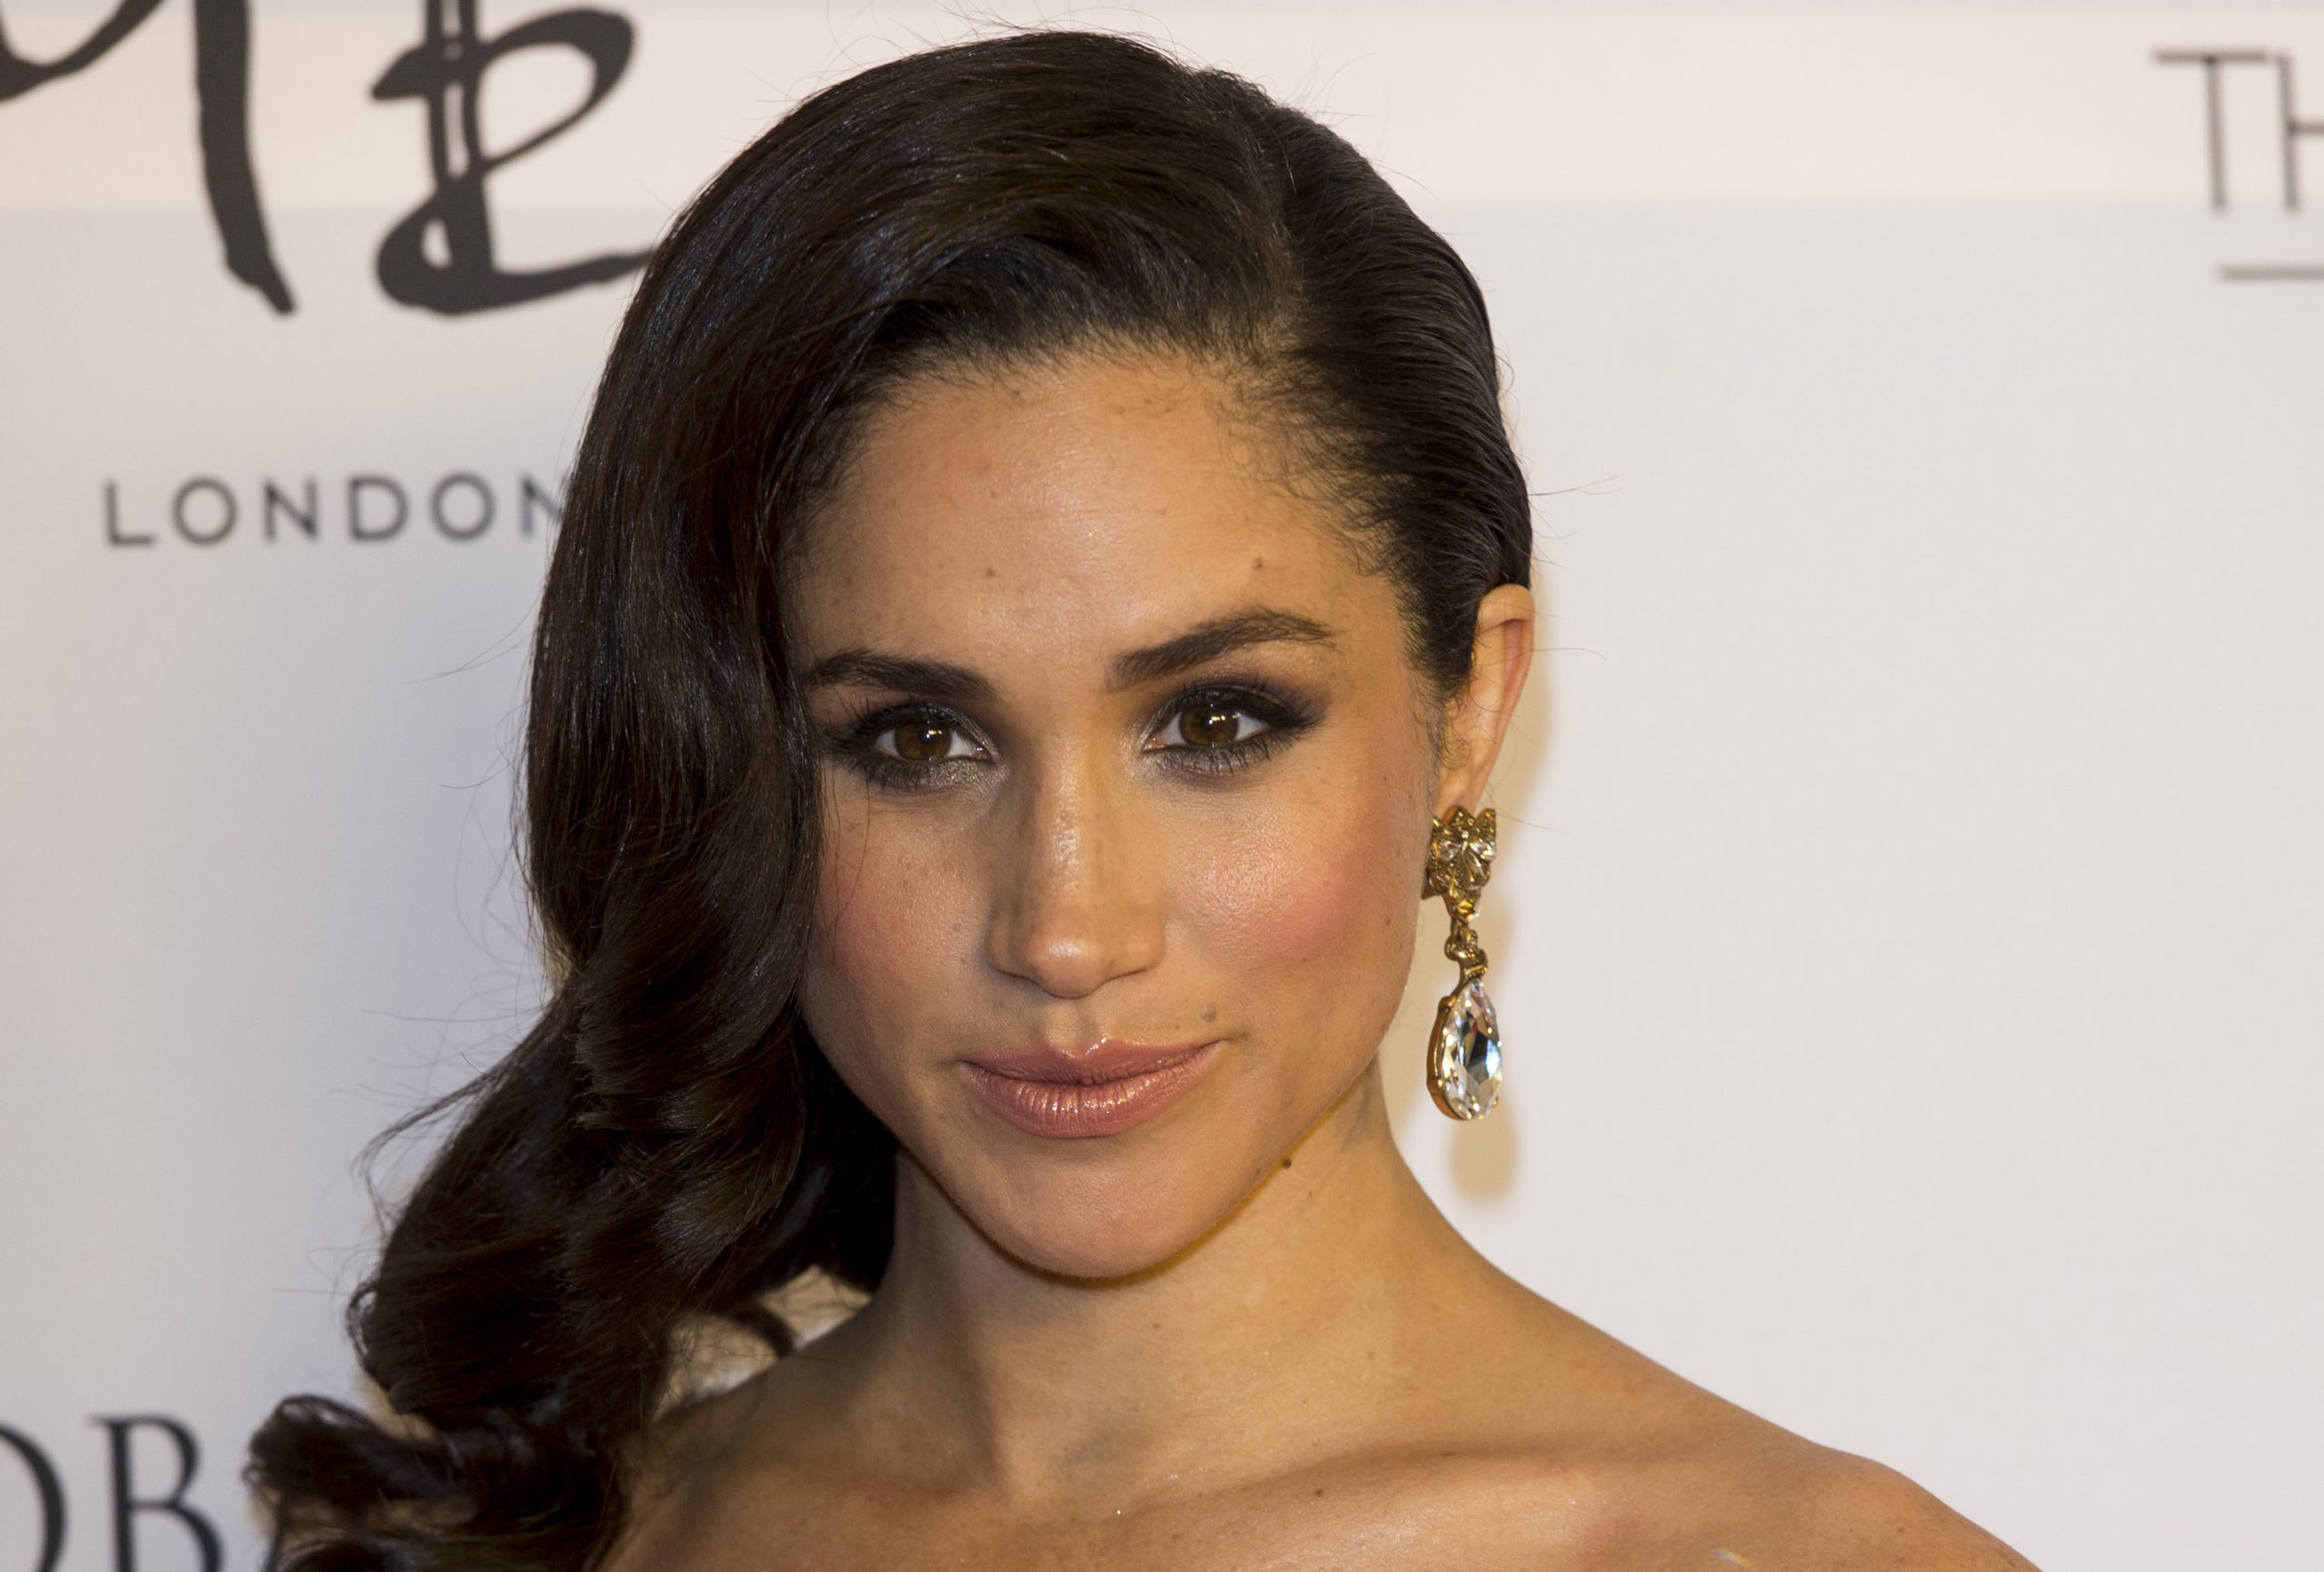 Lizzie Cundy accusa l'ex amica Meghan Markle